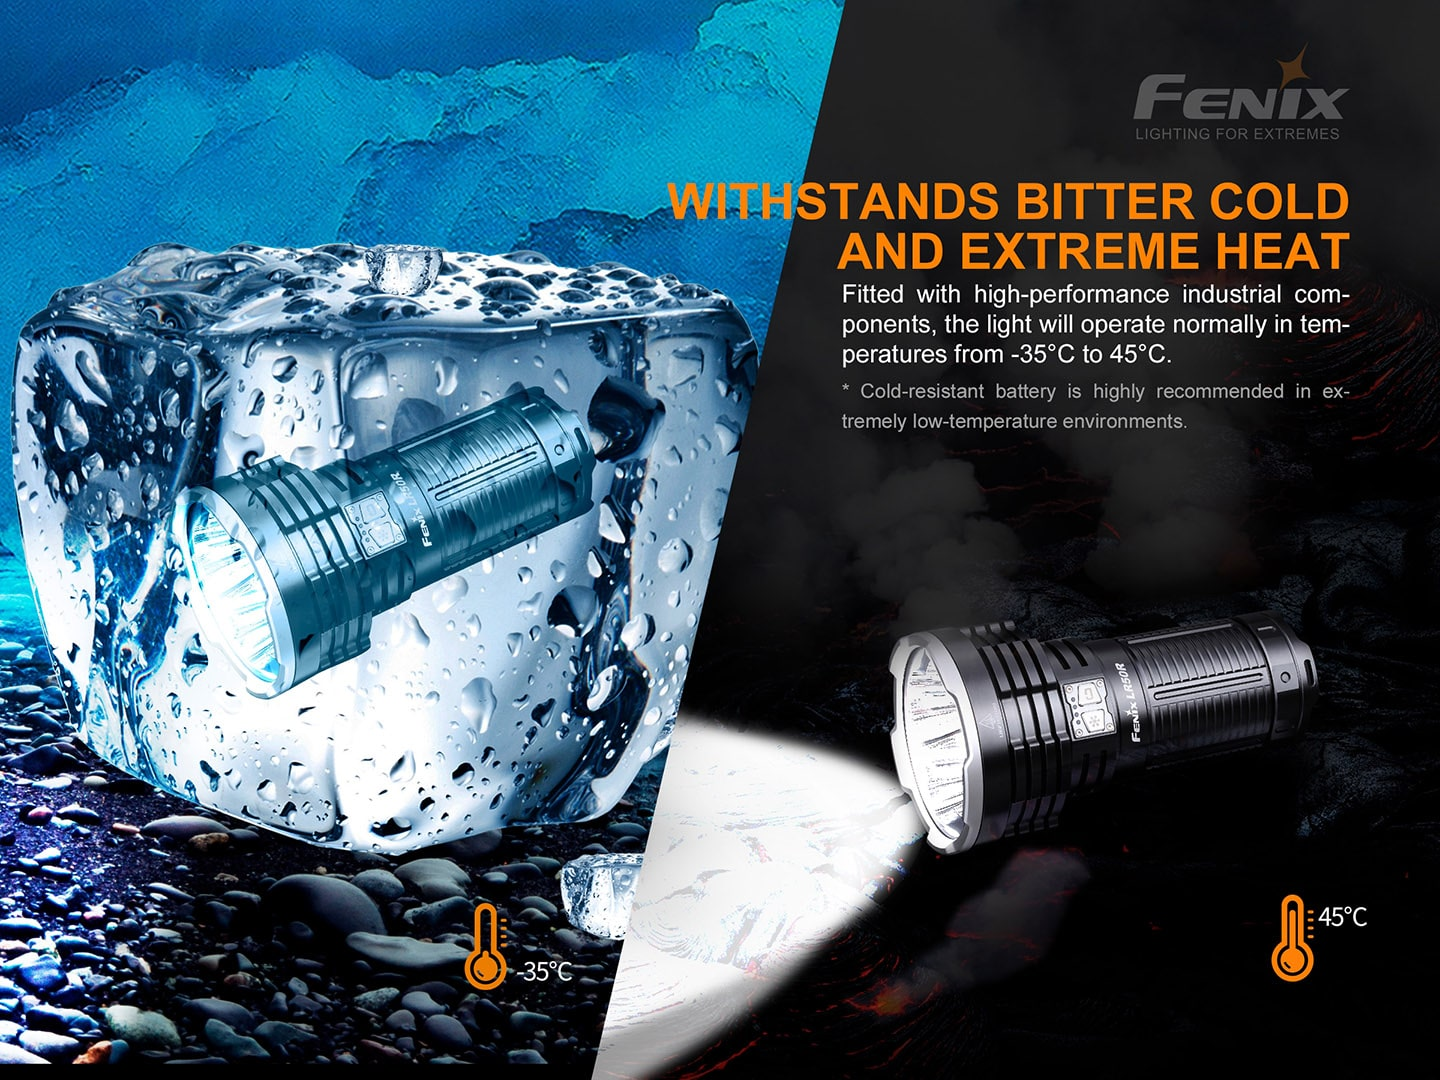 Buy Fenix LR50R in India high performance rechargeable Searchlight, 12000 Lumens super bright torch